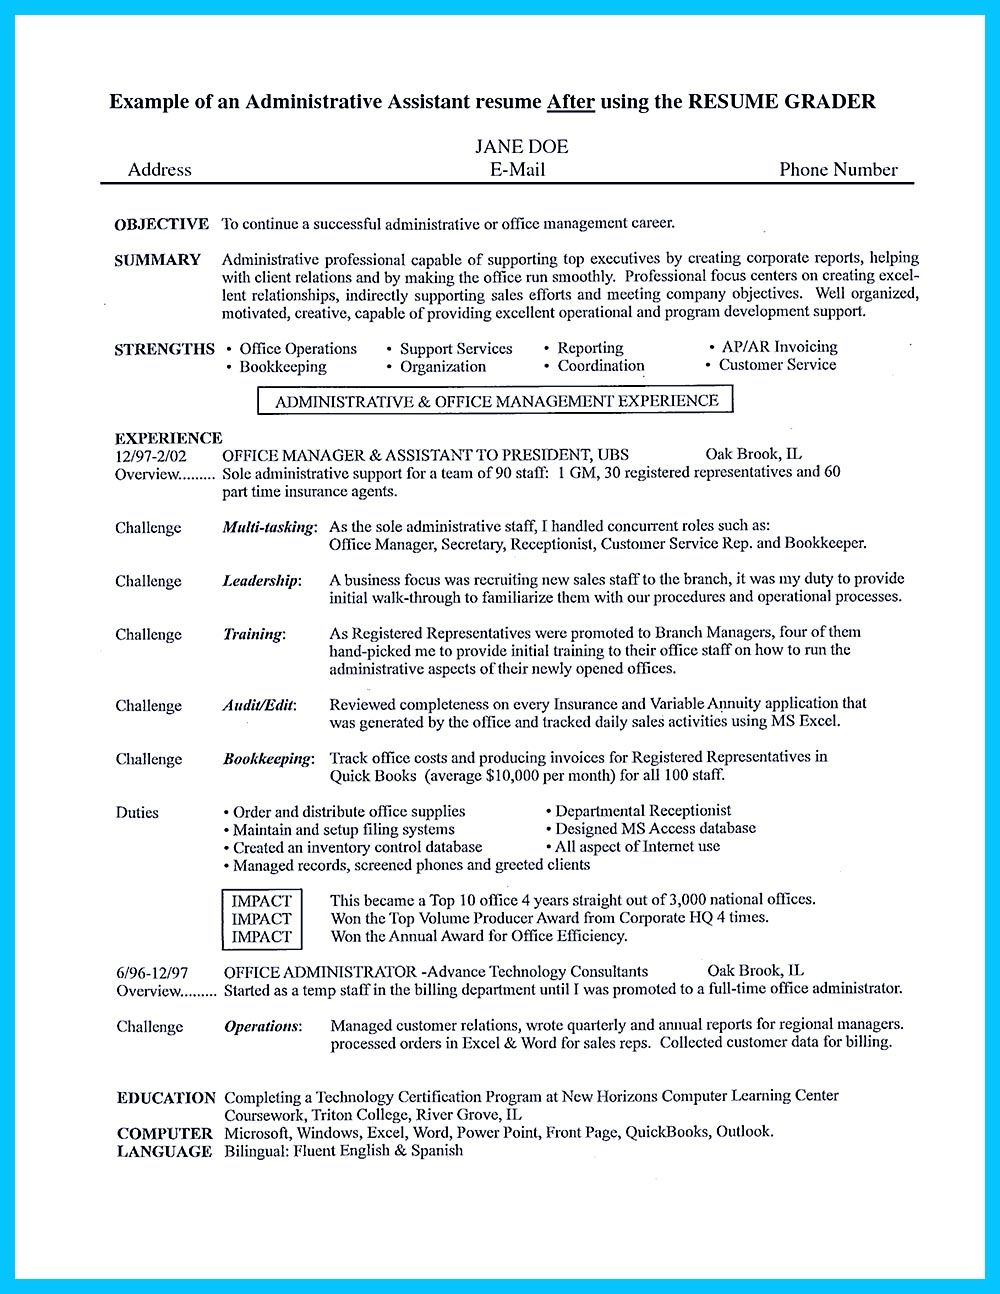 entry level office jobs warehouse administrative assistant resume best free templates for Resume Warehouse Administrative Assistant Resume